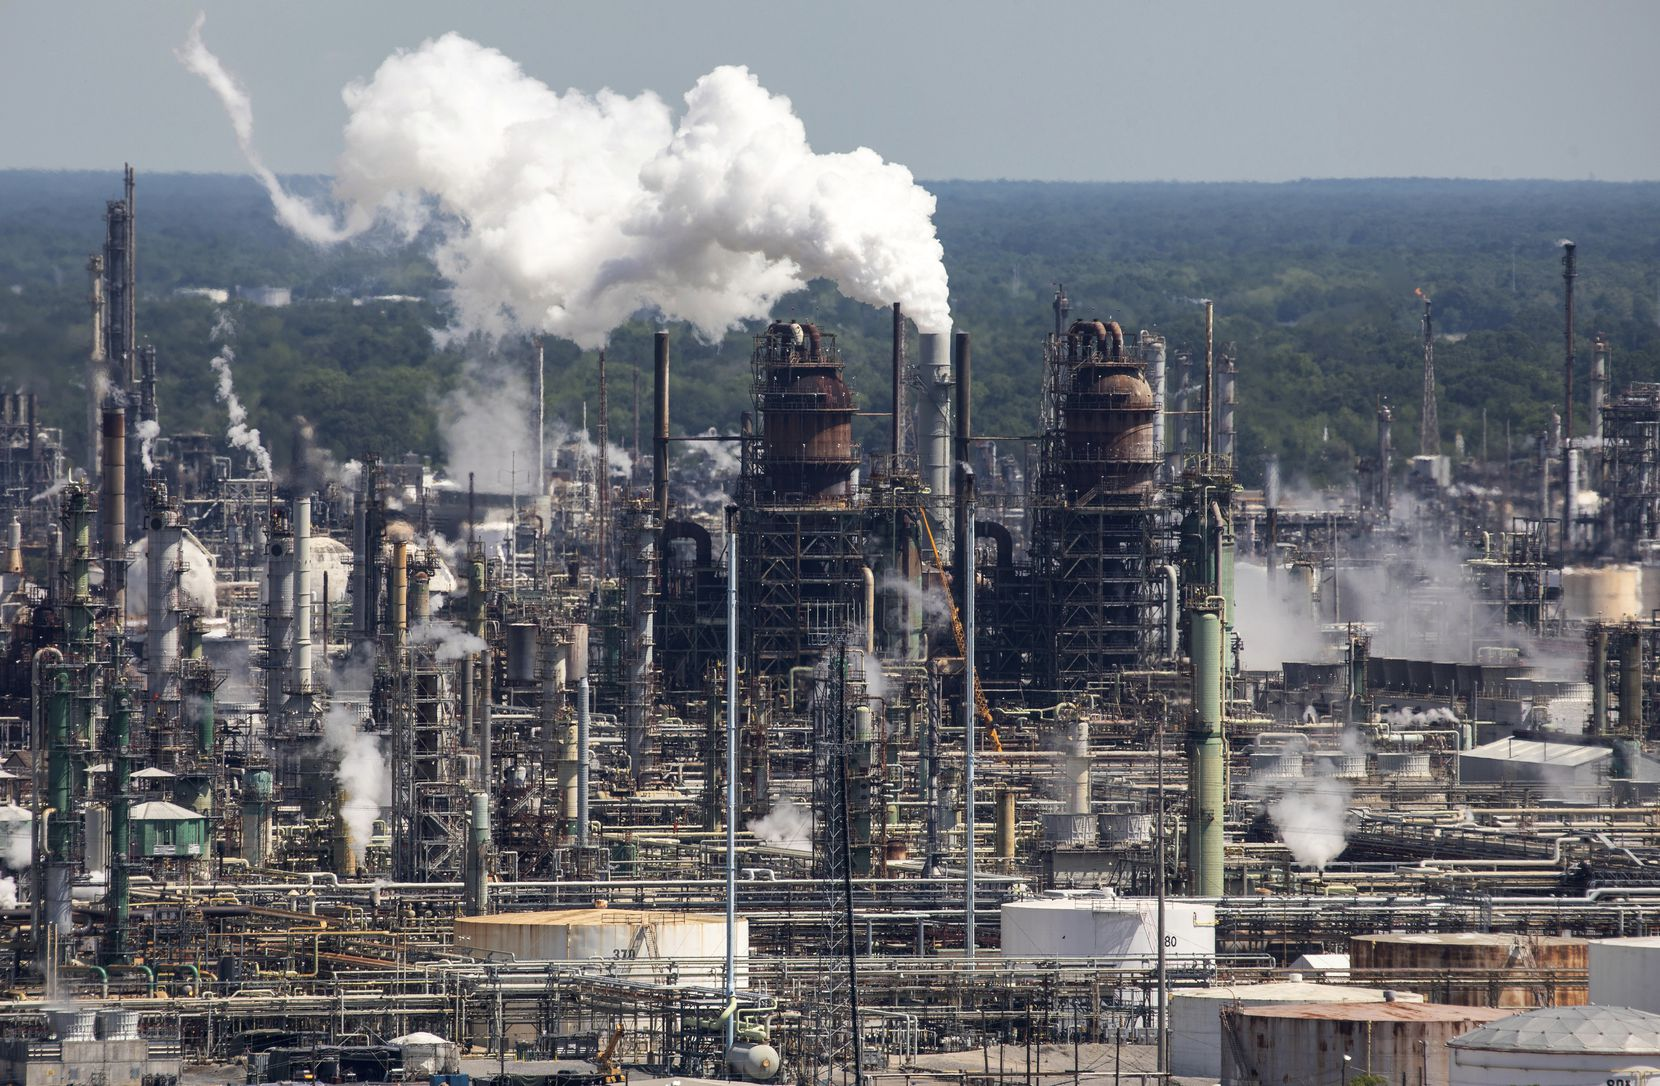 Cenikor sent participants to work at an Exxon refinery in Baton Rouge, among other places. (Julie Dermansky/for Reveal)